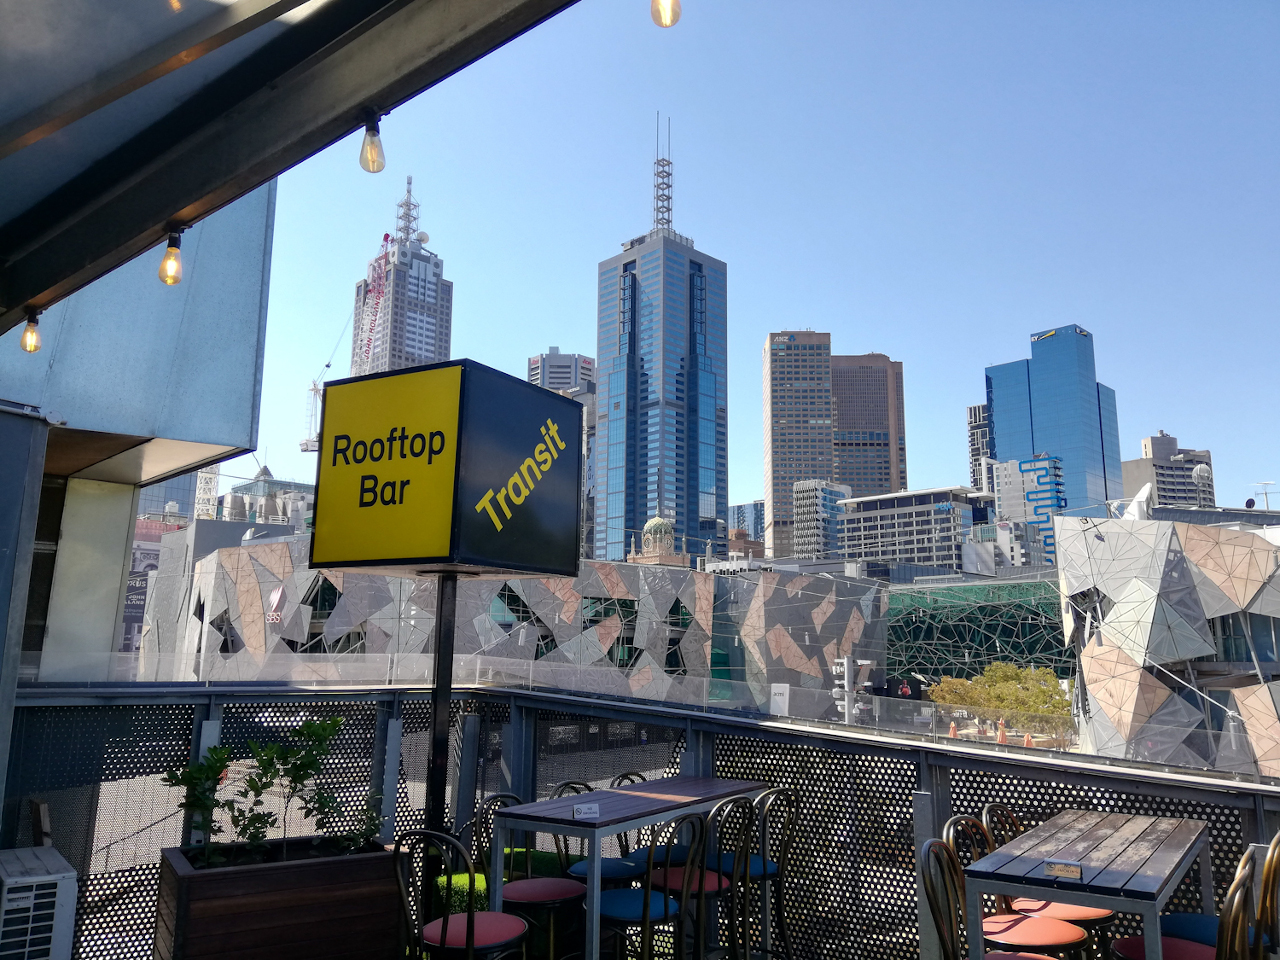 Transit Rooftop Bar is one of Melbourne's best rooftop bars. Read this article to discover all the amazing bars to visit in Melbourne!